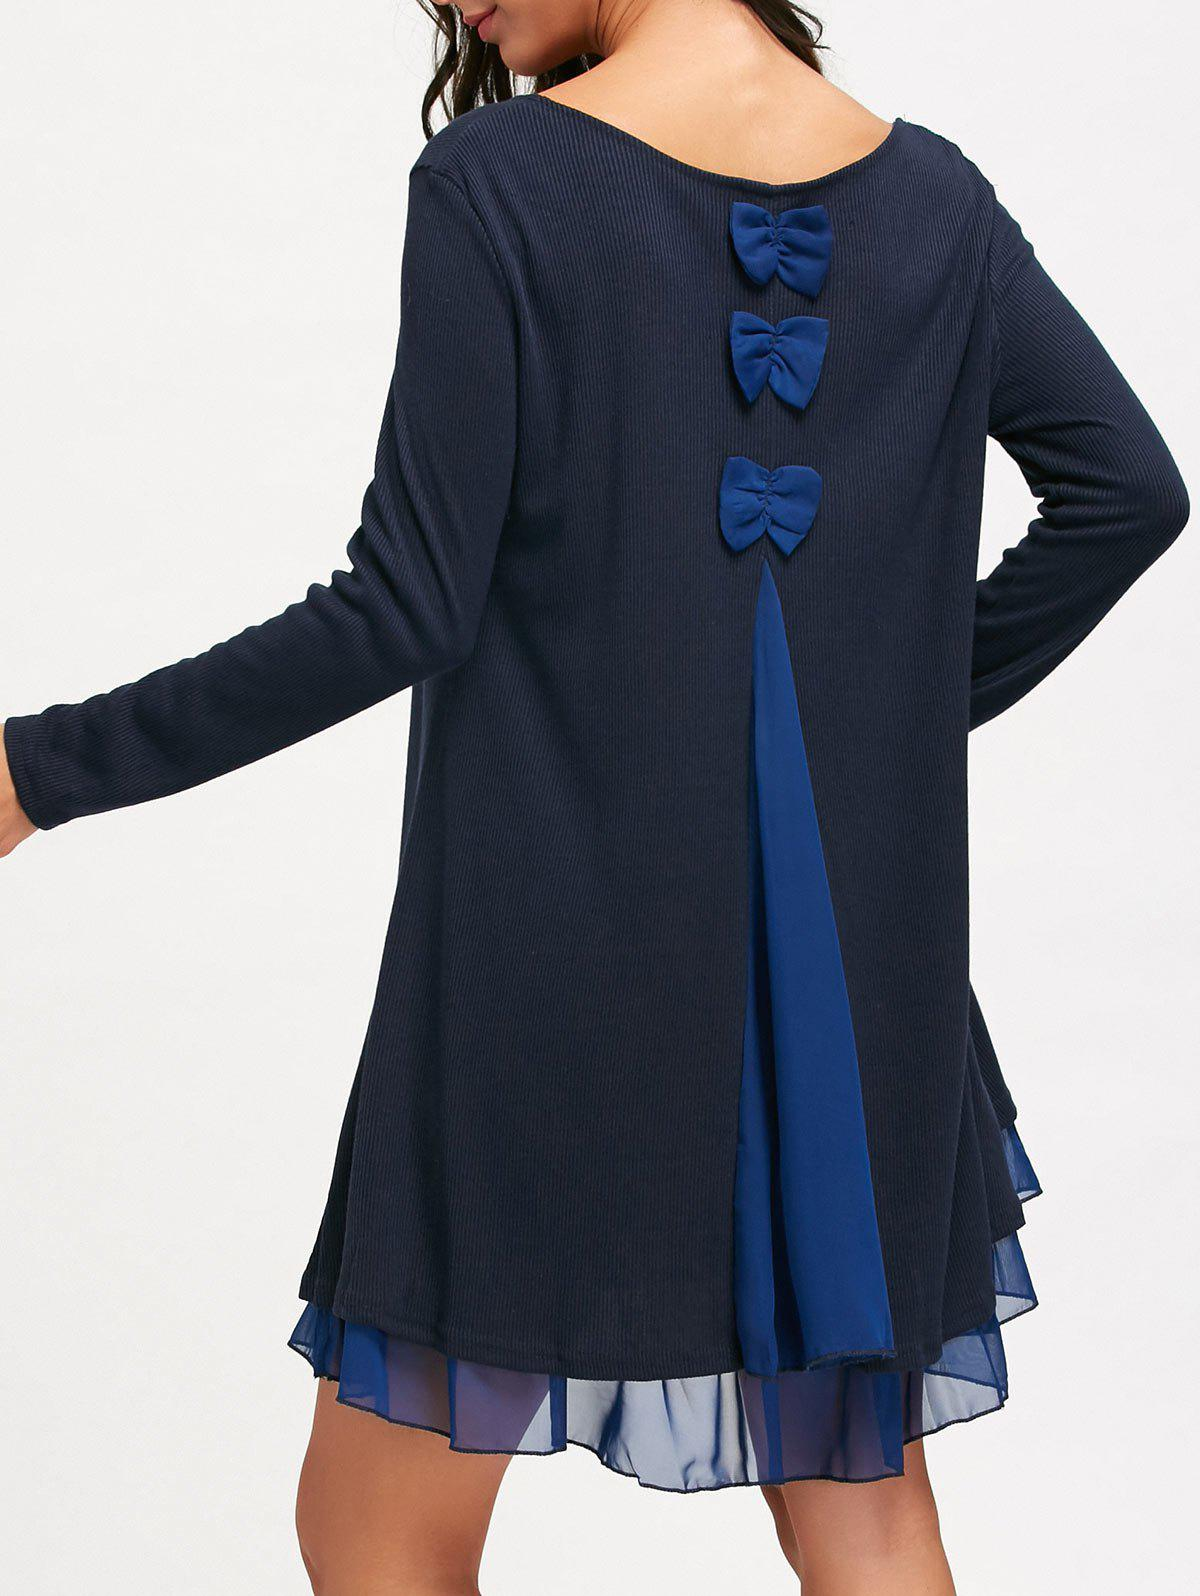 Chiffon Panel Long Sleeve Swing DressWOMEN<br><br>Size: L; Color: PURPLISH BLUE; Style: Casual; Material: Polyester; Silhouette: Shift; Dress Type: Swing Dress; Dresses Length: Mini; Neckline: Scoop Neck; Sleeve Length: Long Sleeves; Embellishment: Panel; Pattern Type: Solid Color; With Belt: No; Season: Fall,Spring,Winter; Weight: 0.5300kg; Package Contents: 1 x Dress; Occasion: Casual;